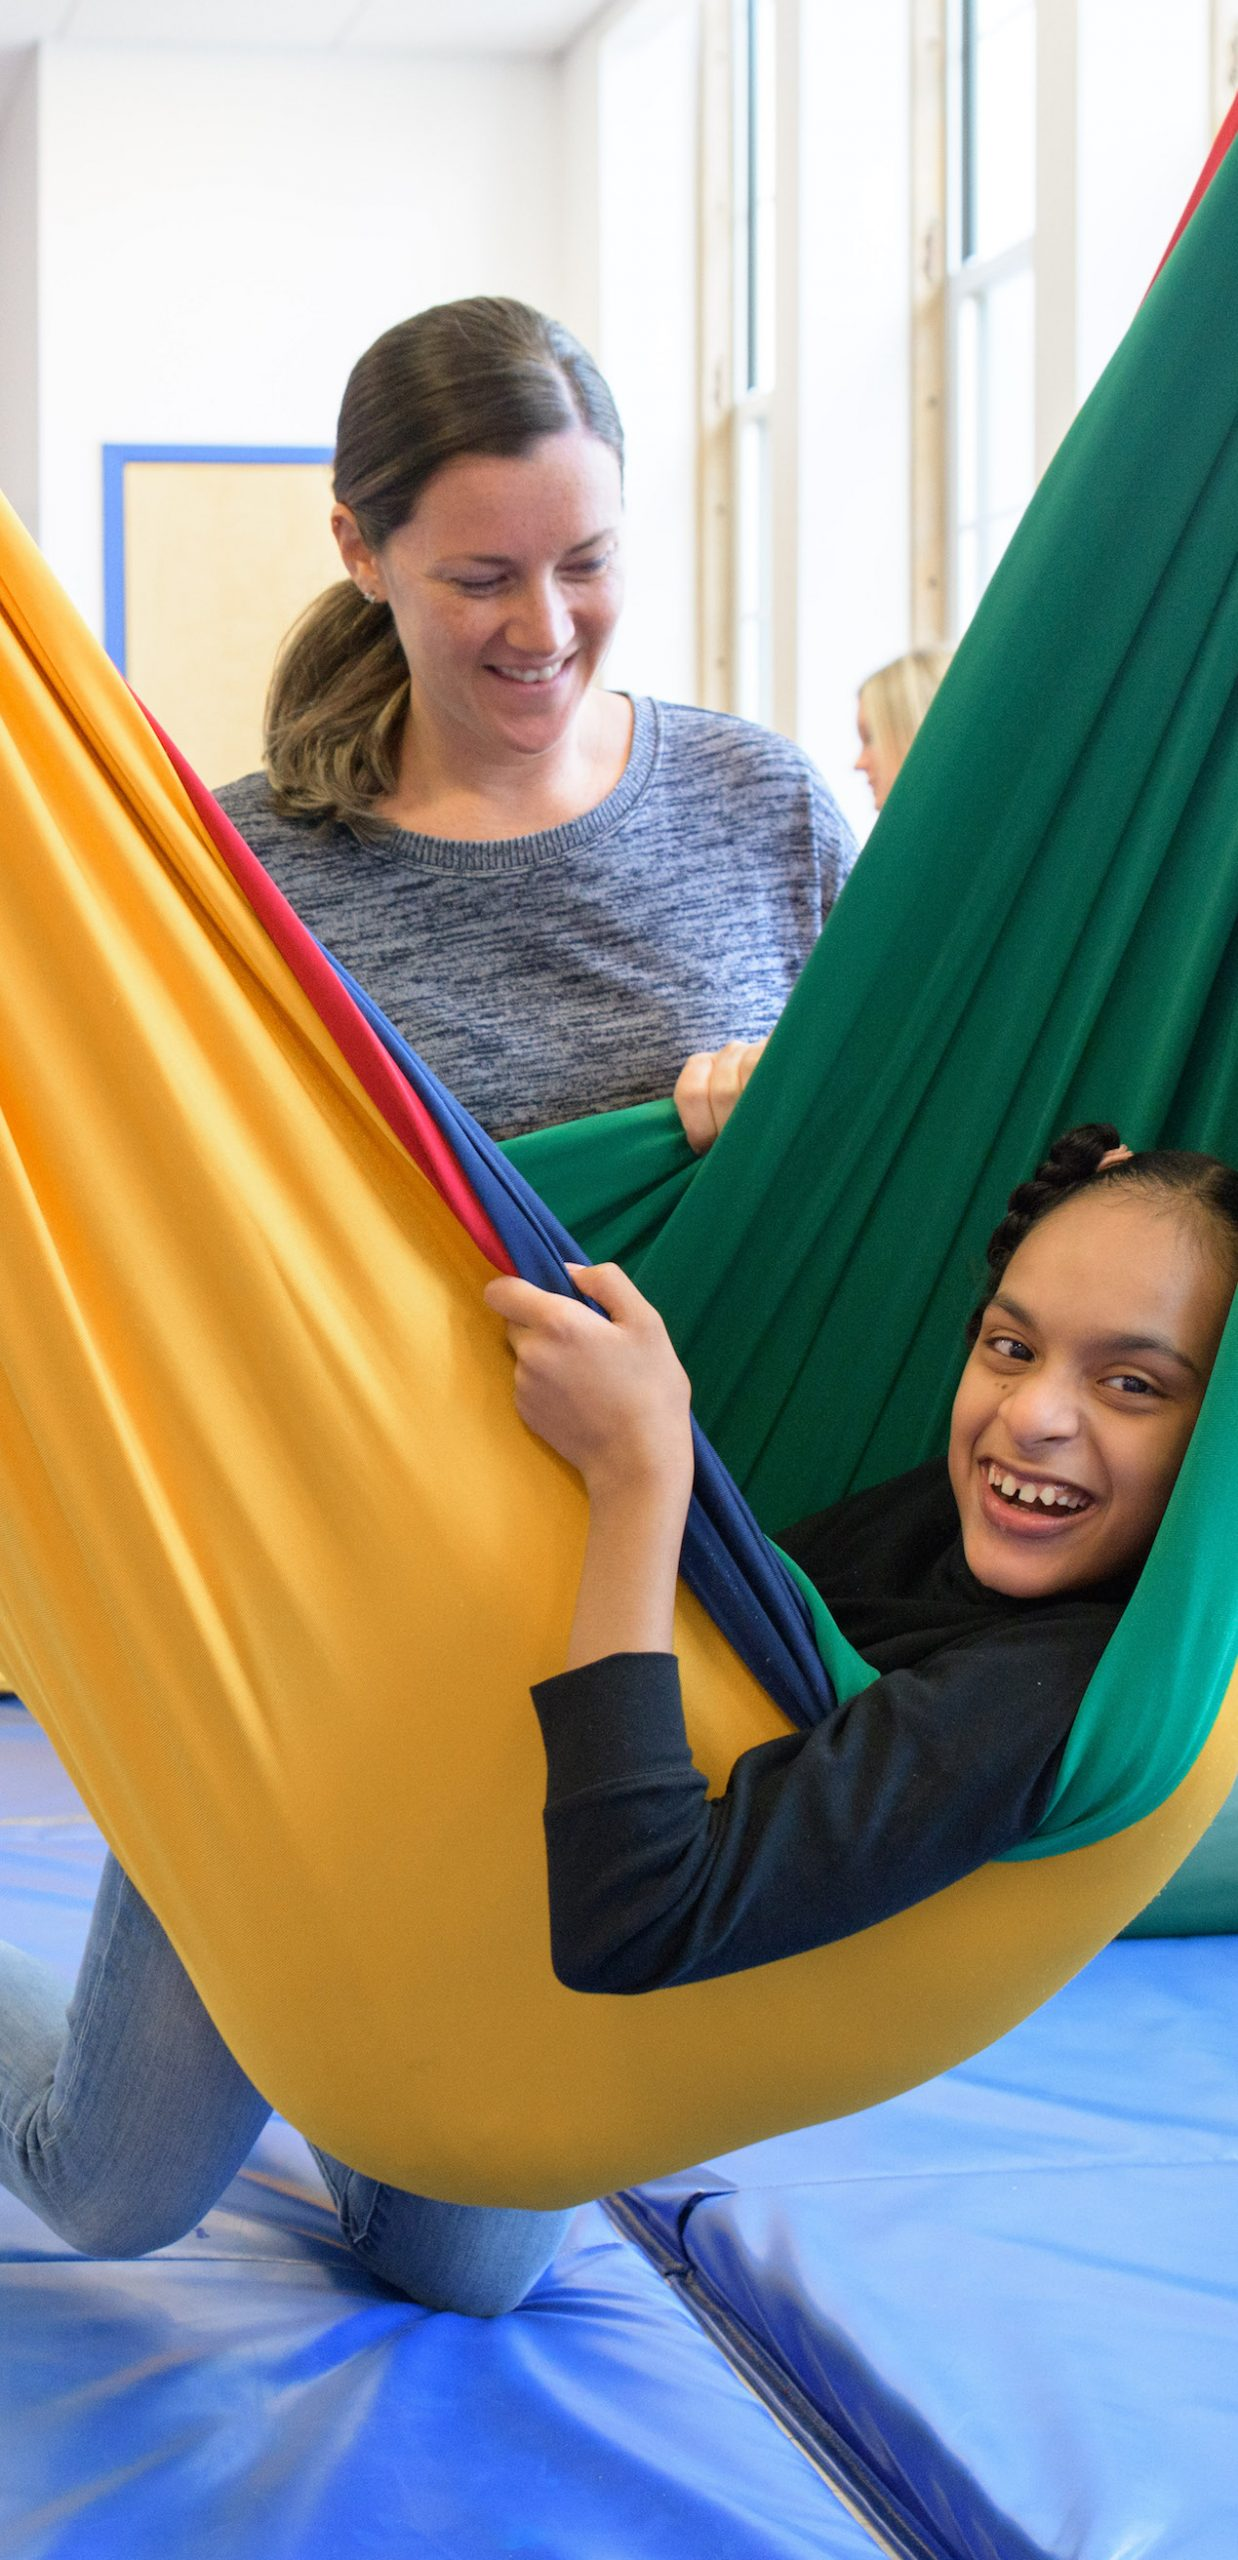 Student in hammock with therapist watching